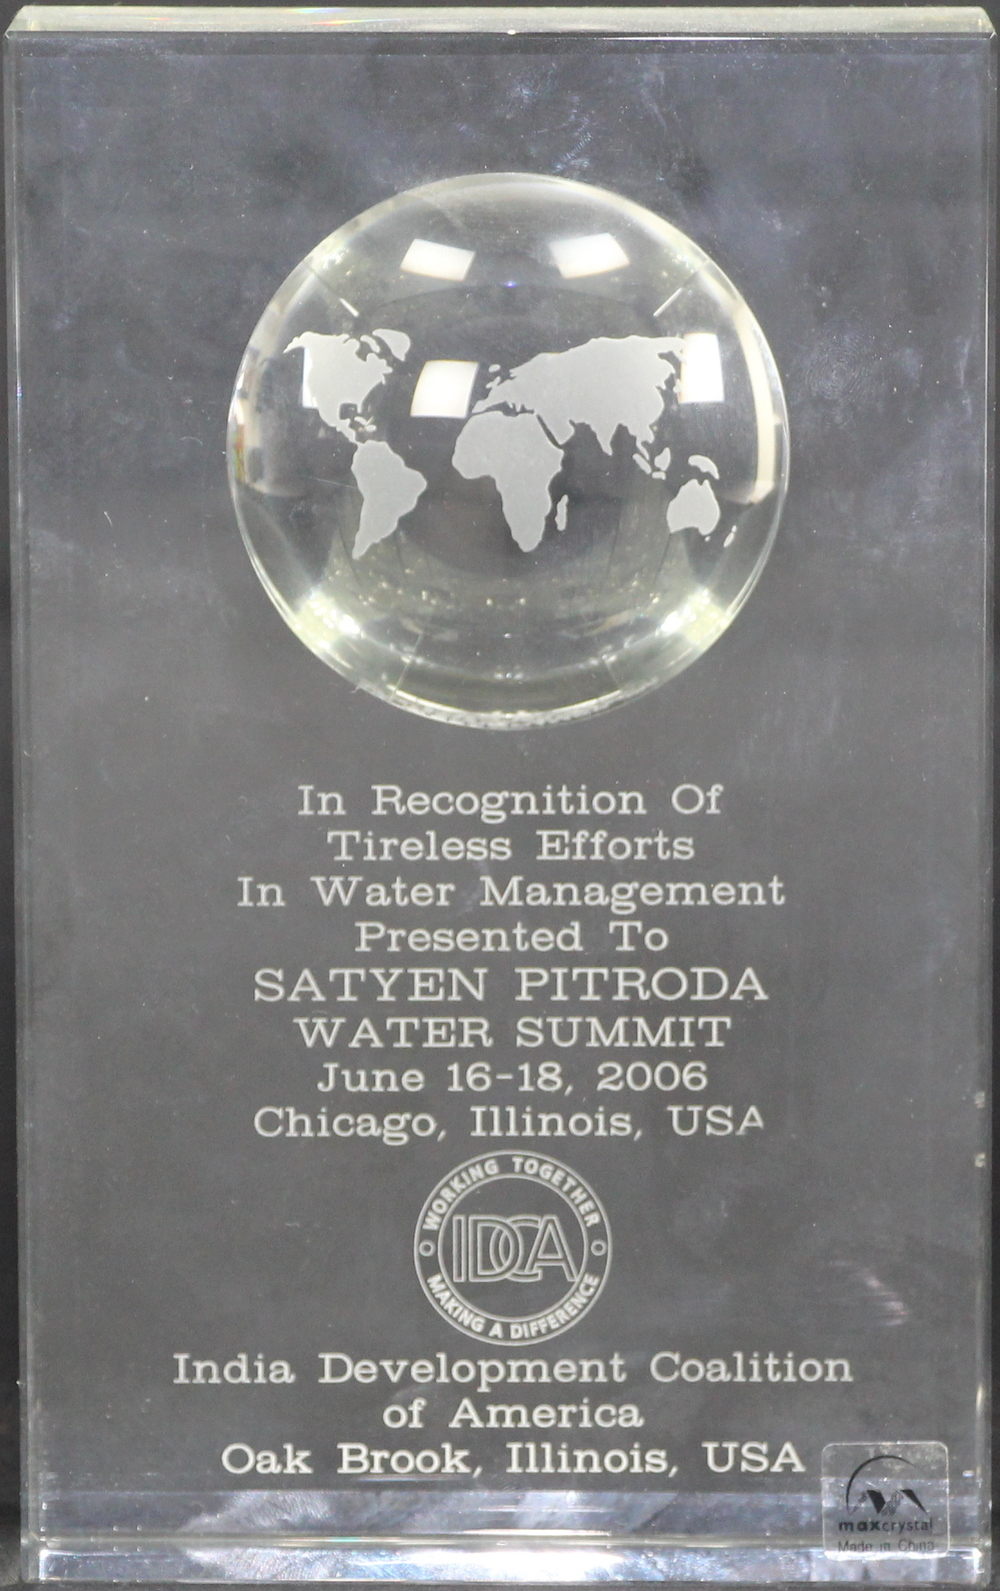 In Recognition of Tireless Efforts of Water Management, Water Summit, India Development Coalition of America, Chicago, 2006